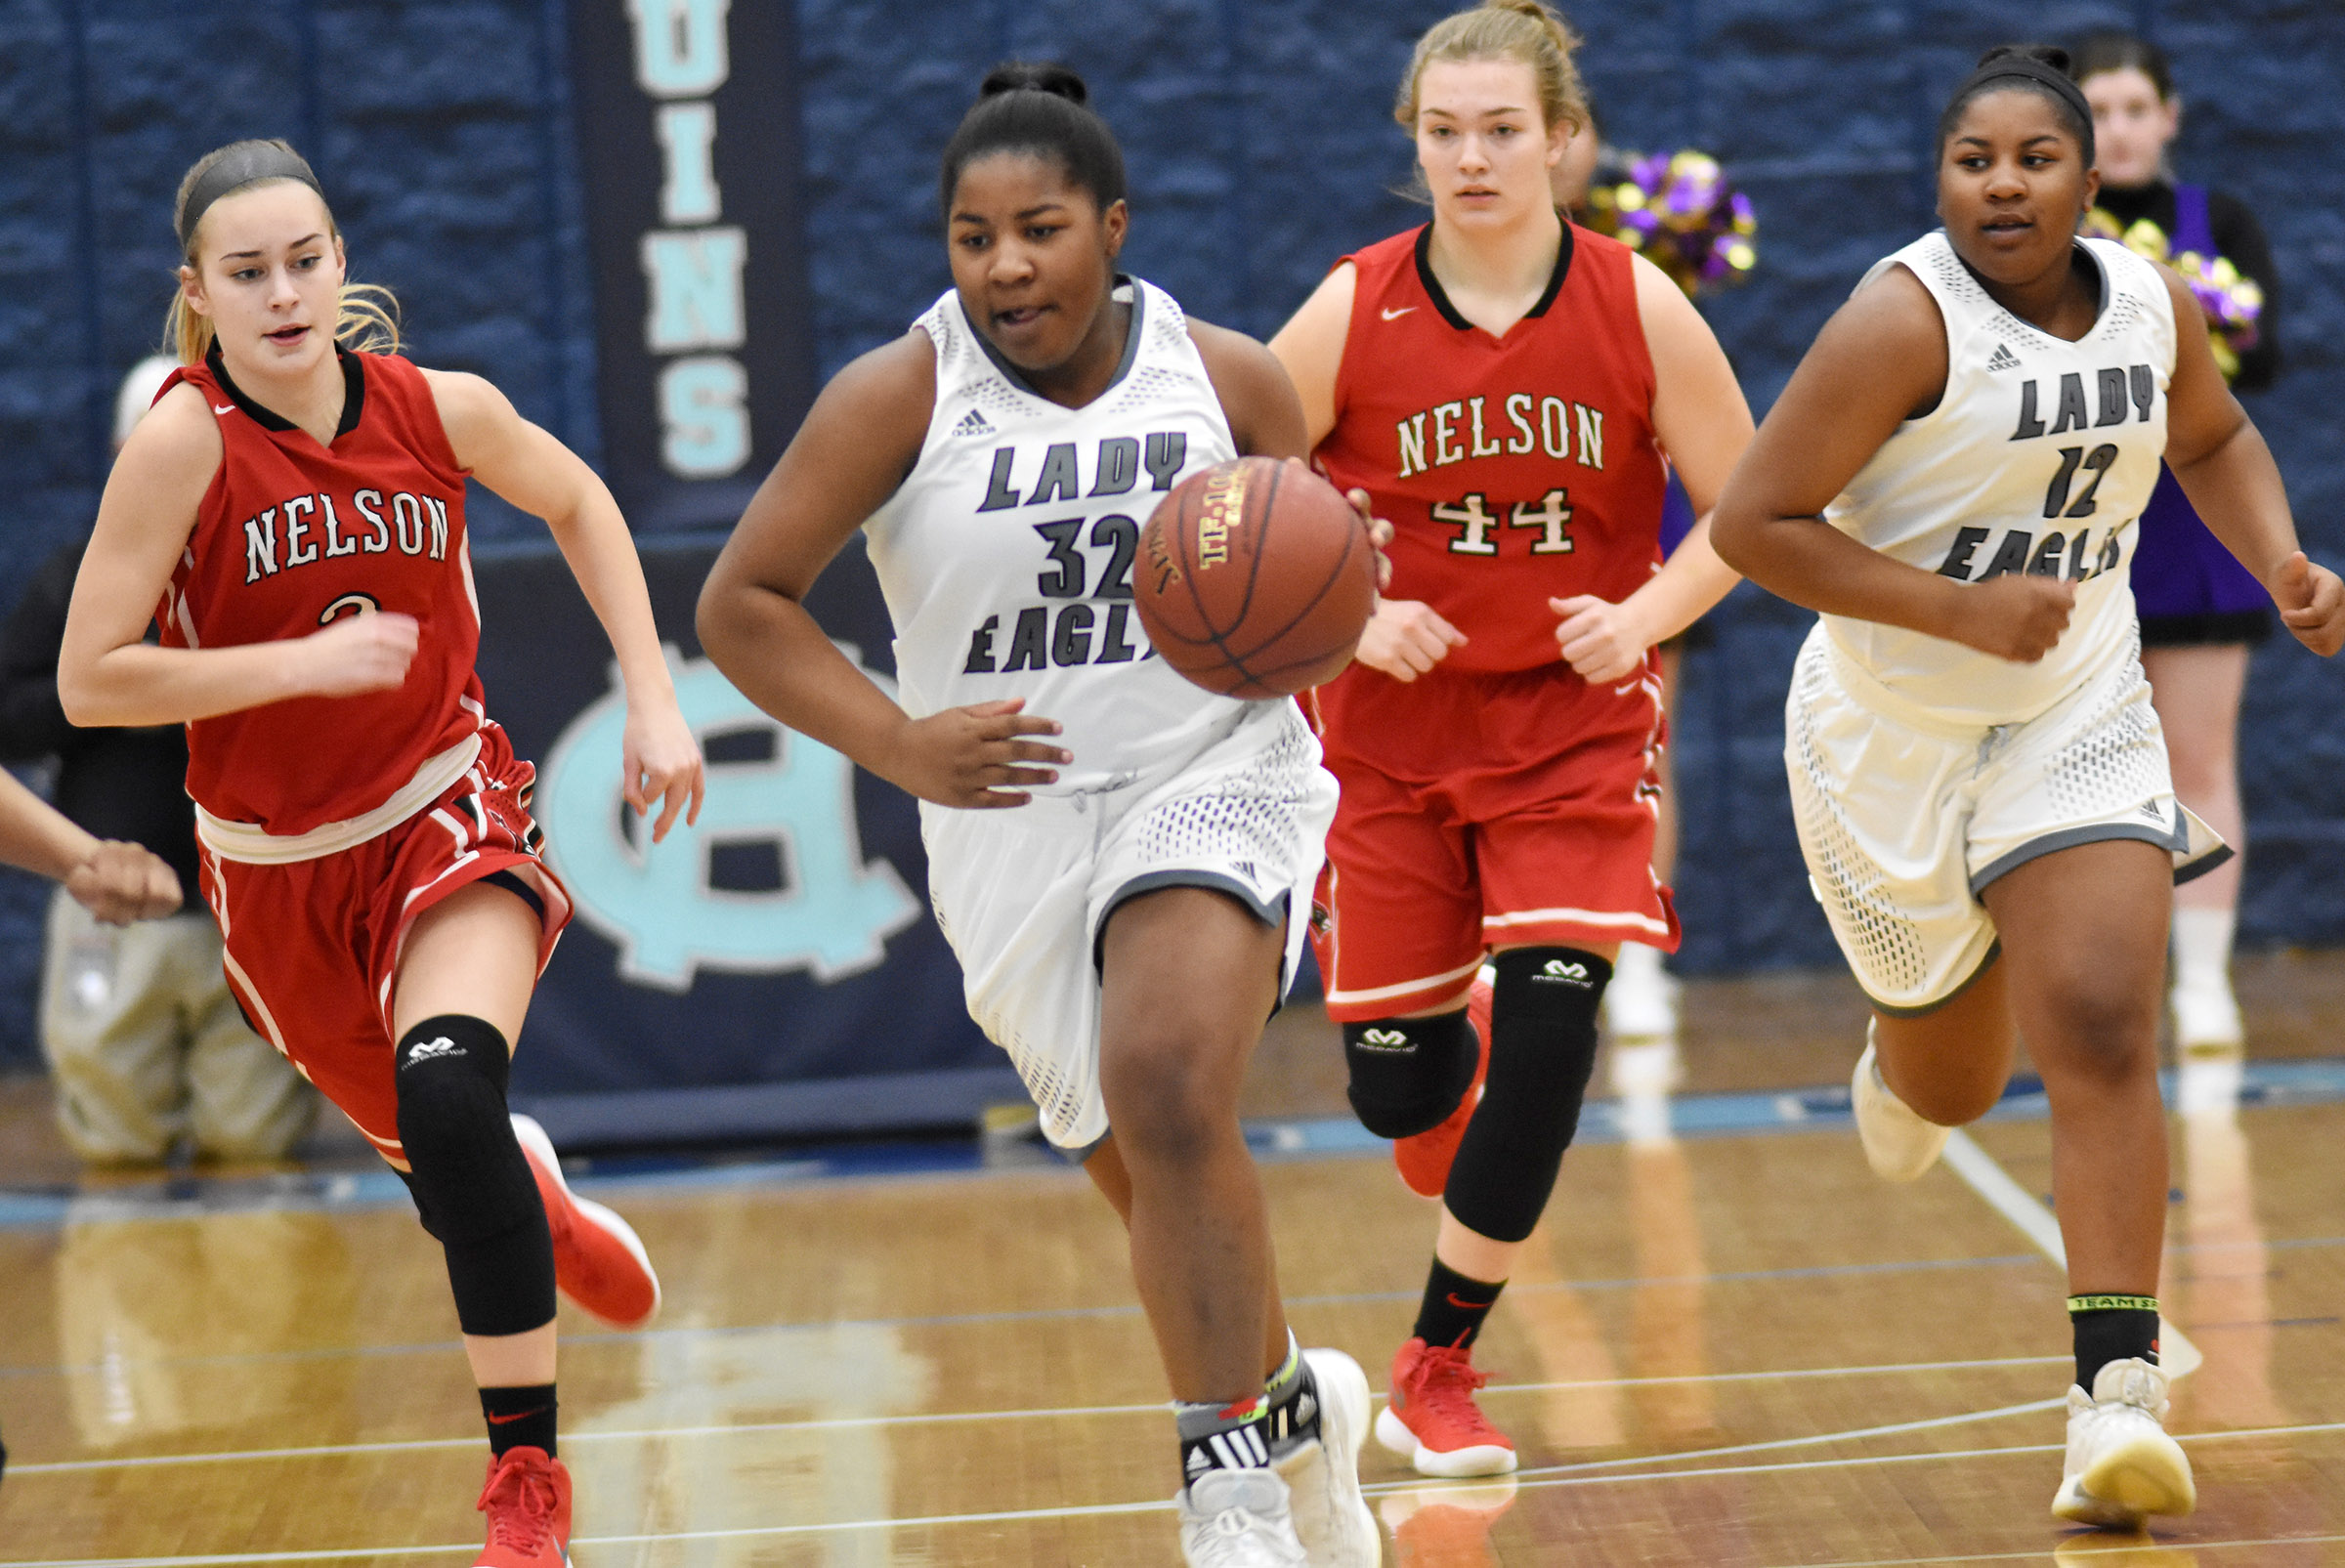 CHS senior Nena Barnett dribbles down the court, with her twin sister, senior Kiyah Barnett, not far behind.